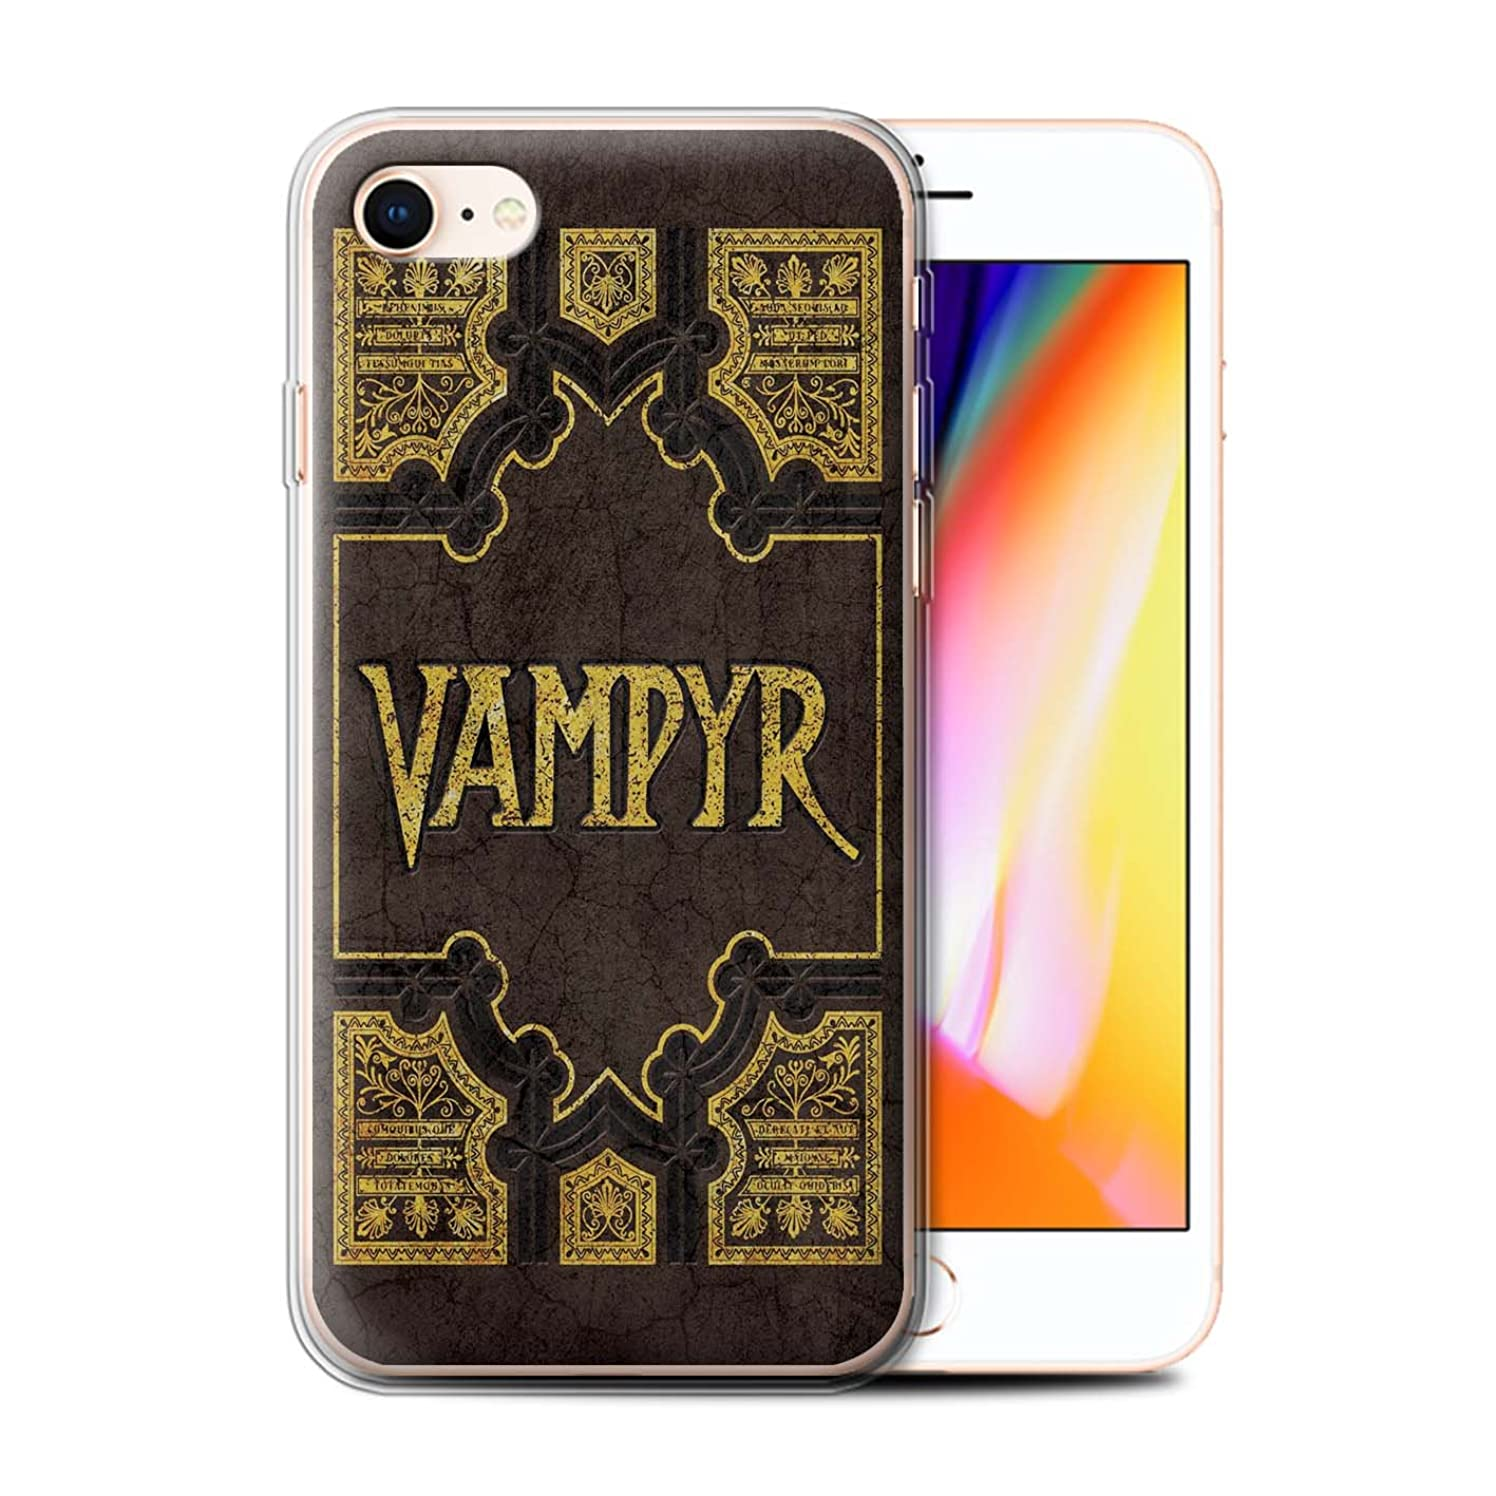 STUFF4 Gel TPU Phone Case/Cover for Apple iPhone 8 / Vampyr Book Design/Vampire Slayer Collection